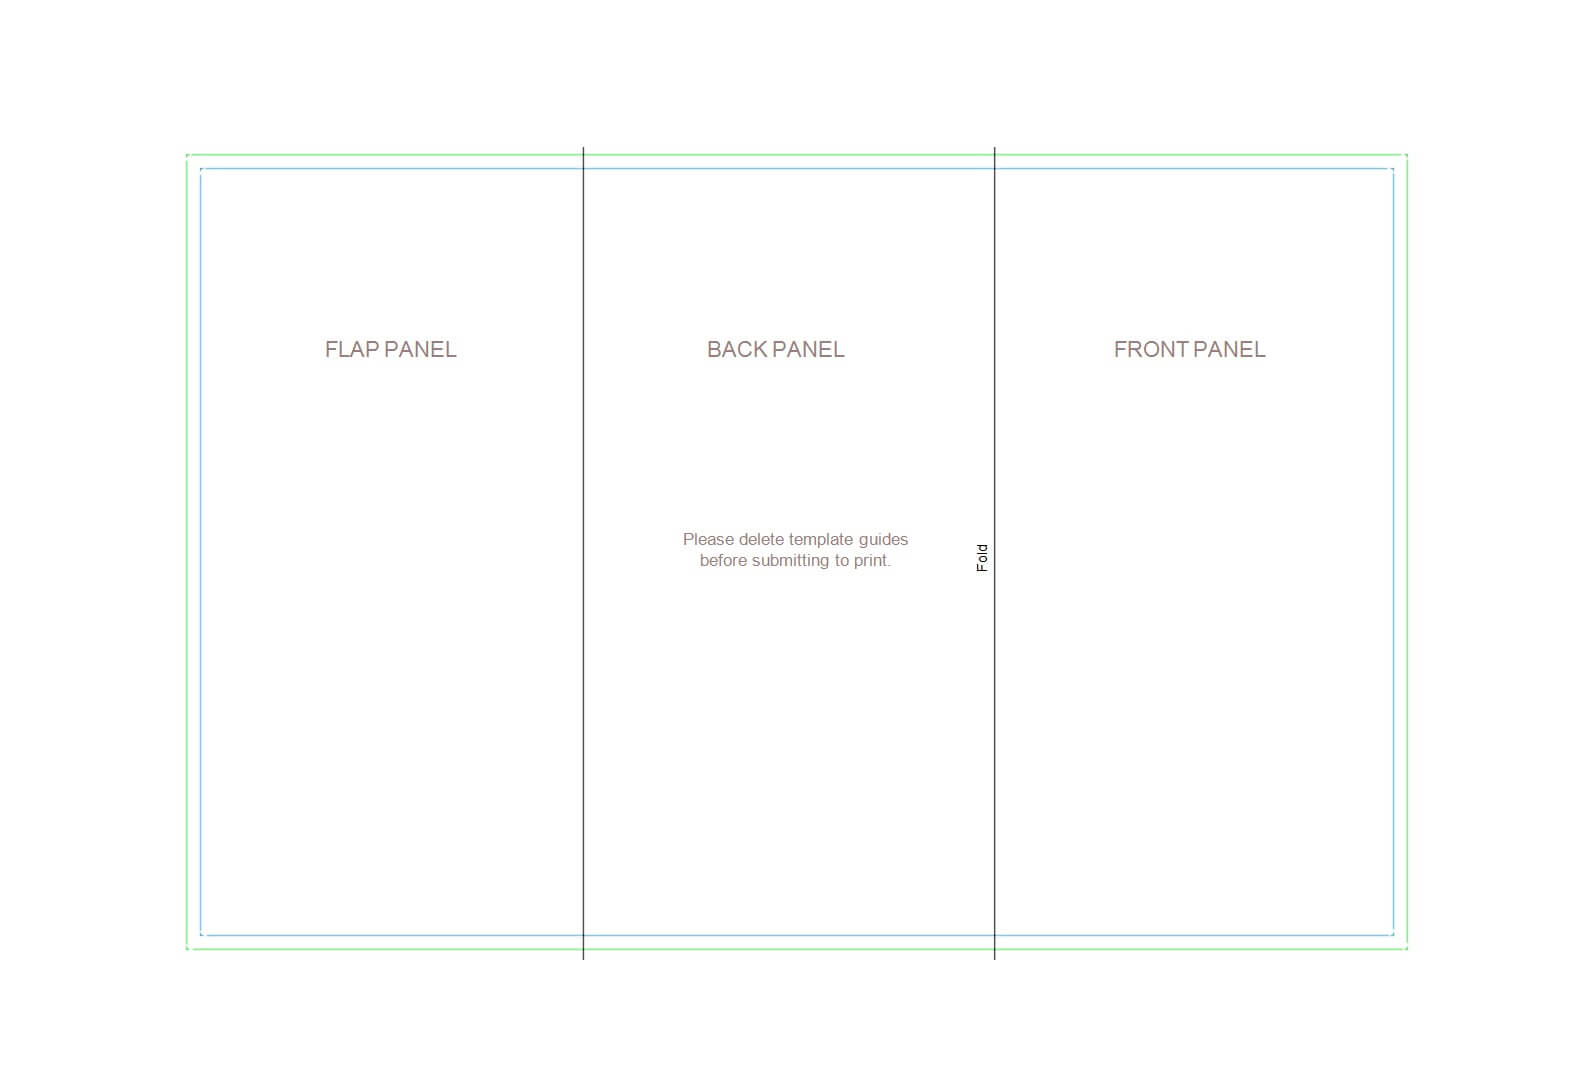 50 Free Pamphlet Templates [Word / Google Docs] ᐅ Template Lab Pertaining To Google Drive Brochure Template